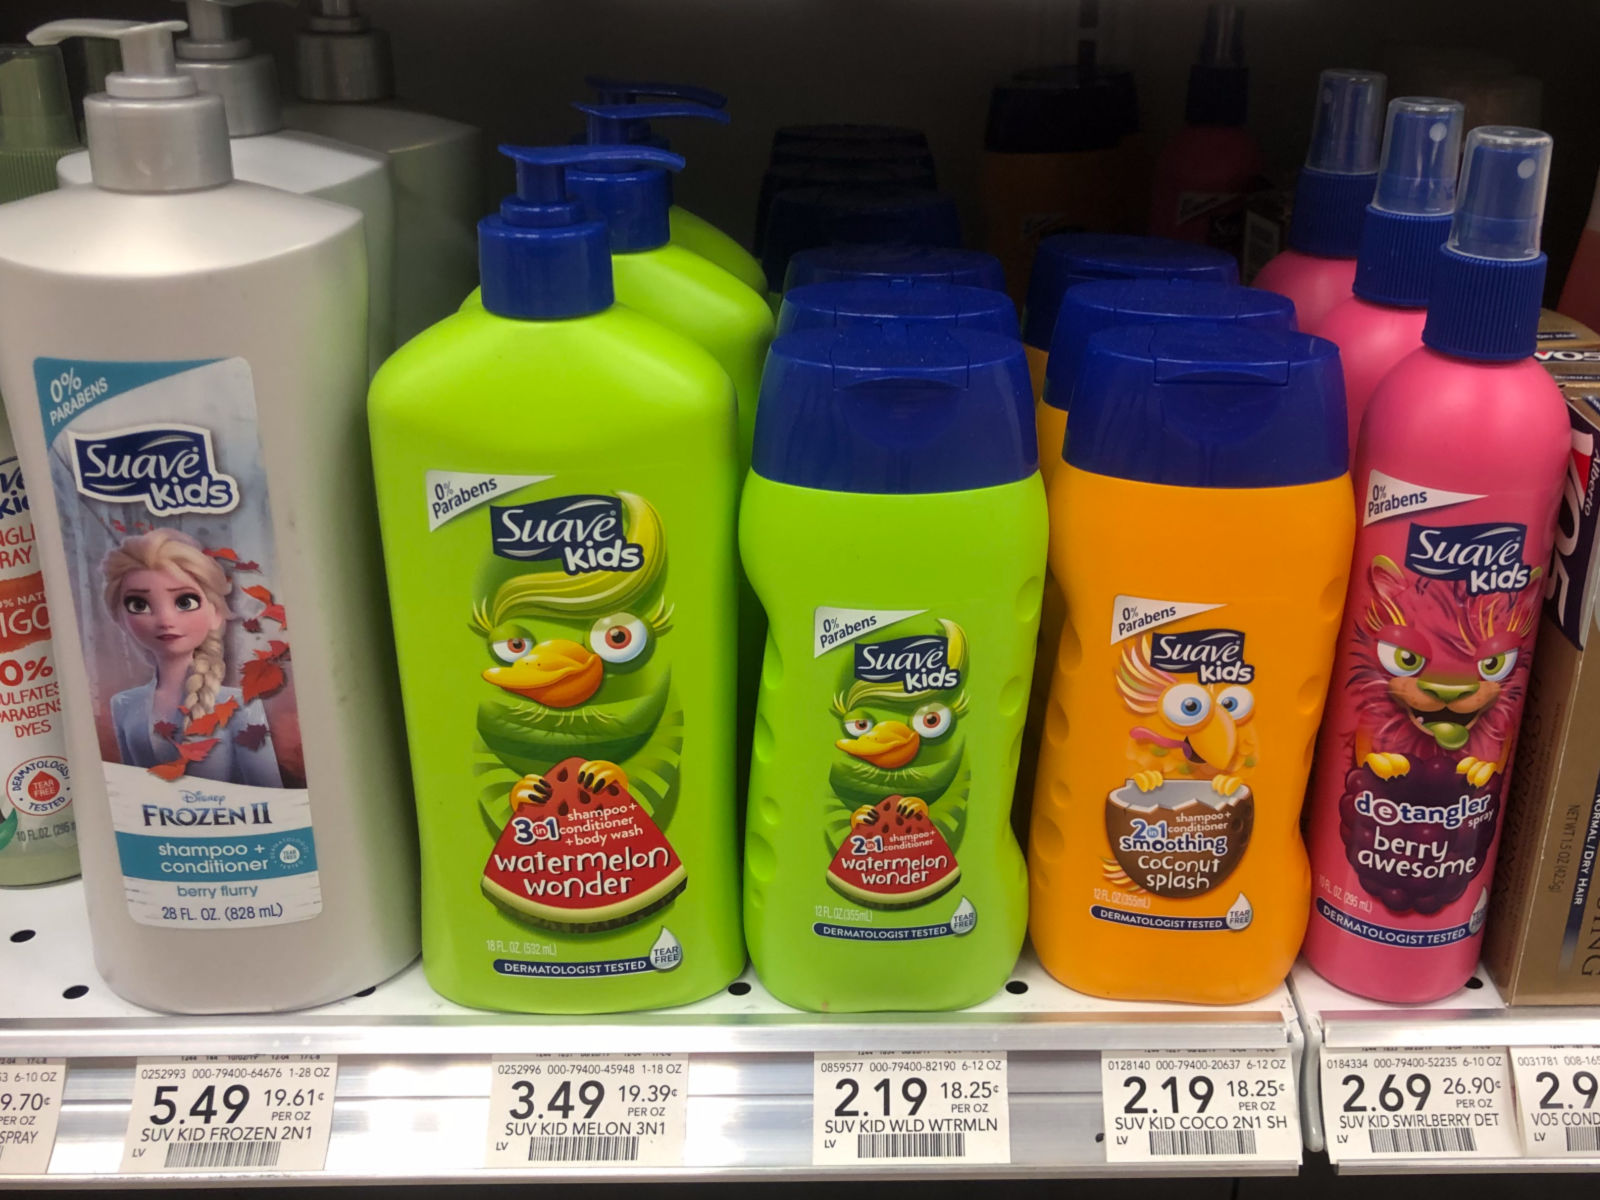 Lots Of Suave Deals - Kids Hair Care Only 69¢ At Publix on I Heart Publix 1